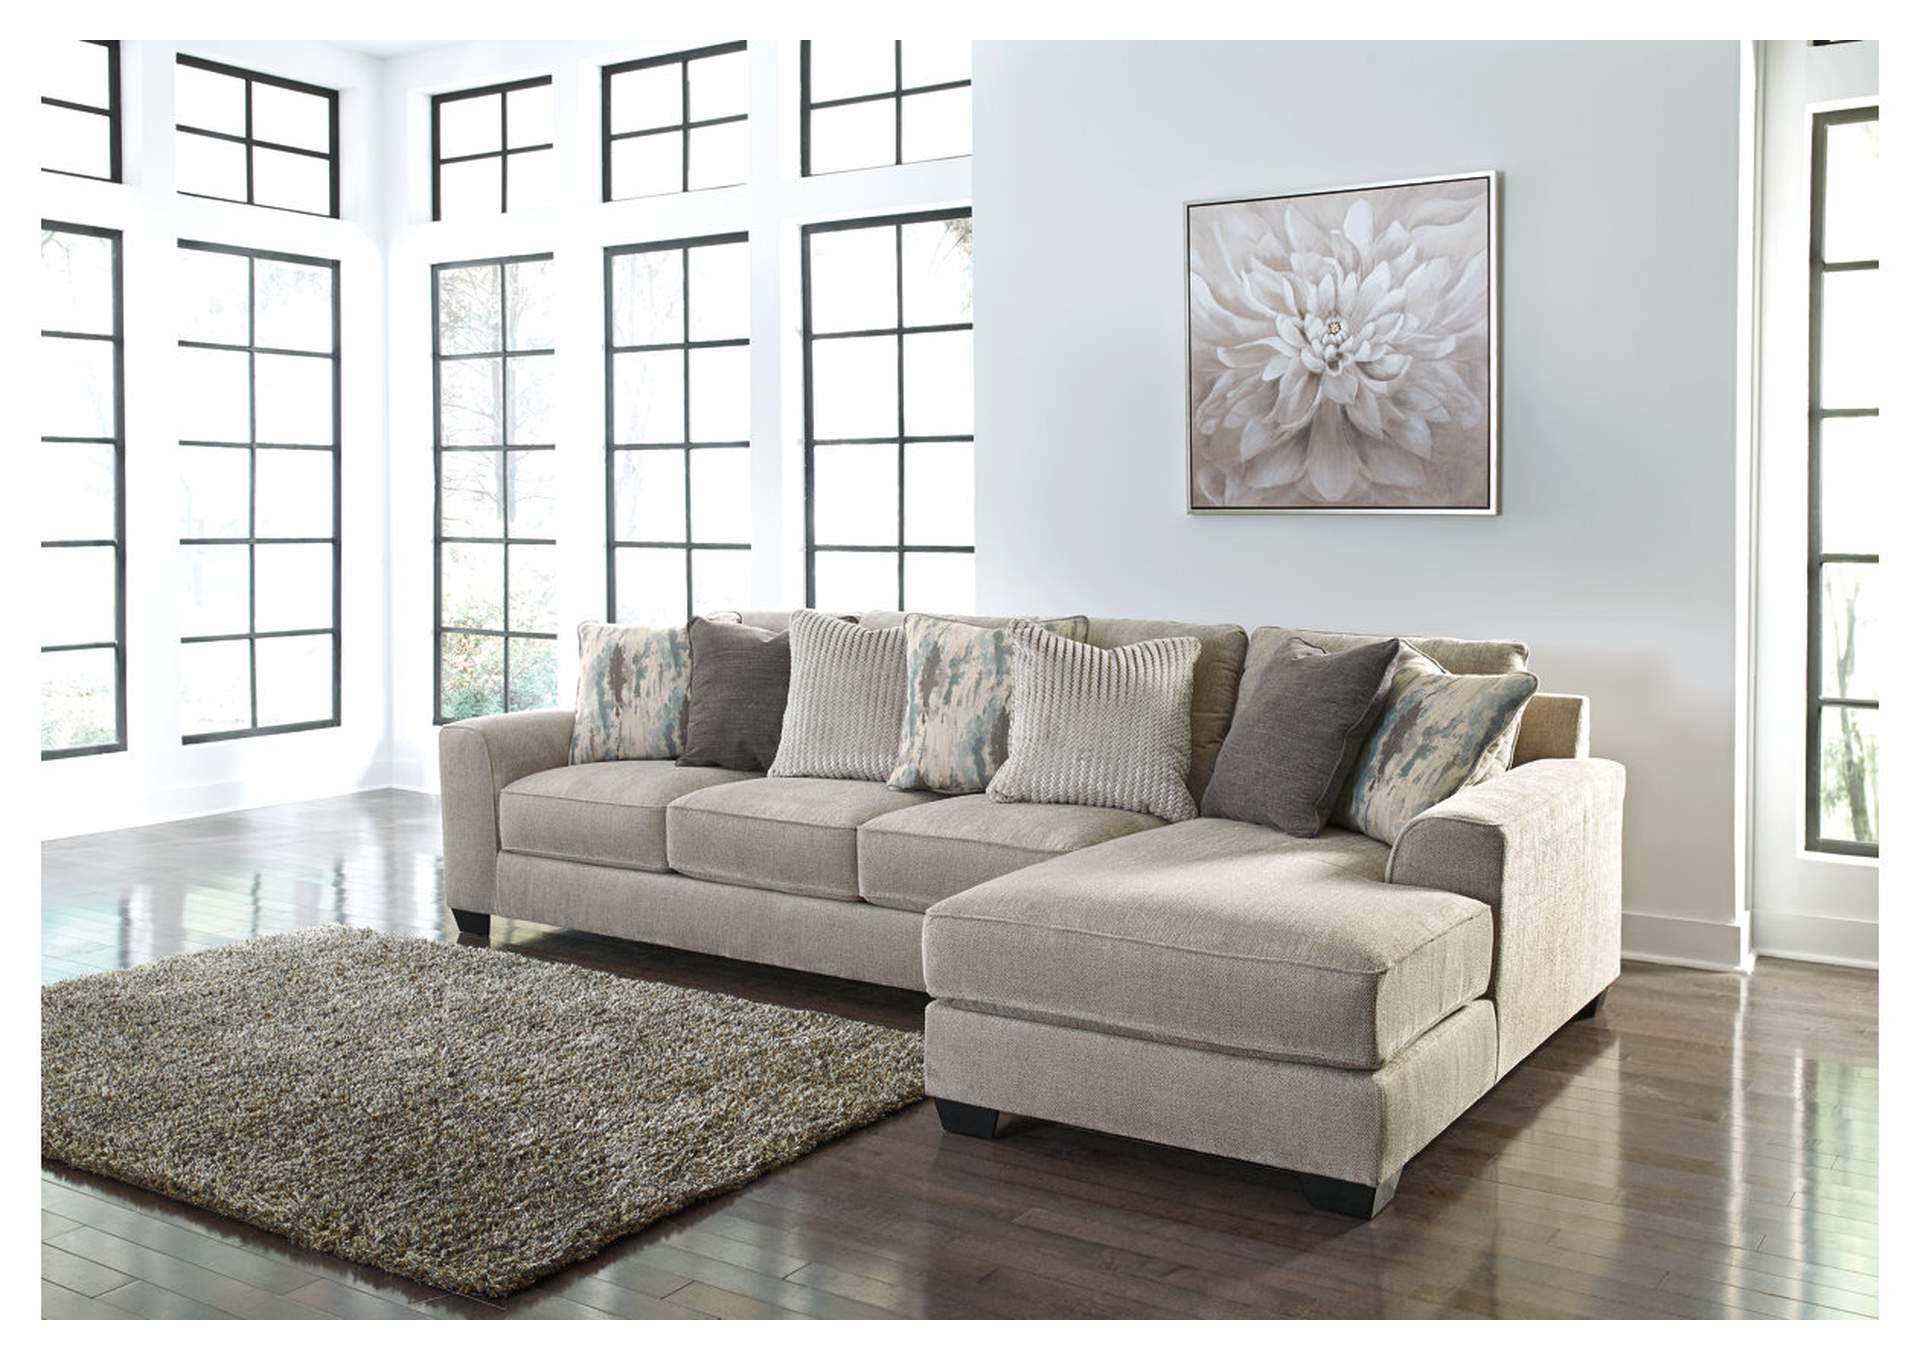 Ardsley 2-Piece Sectional with Chaise,Benchcraft